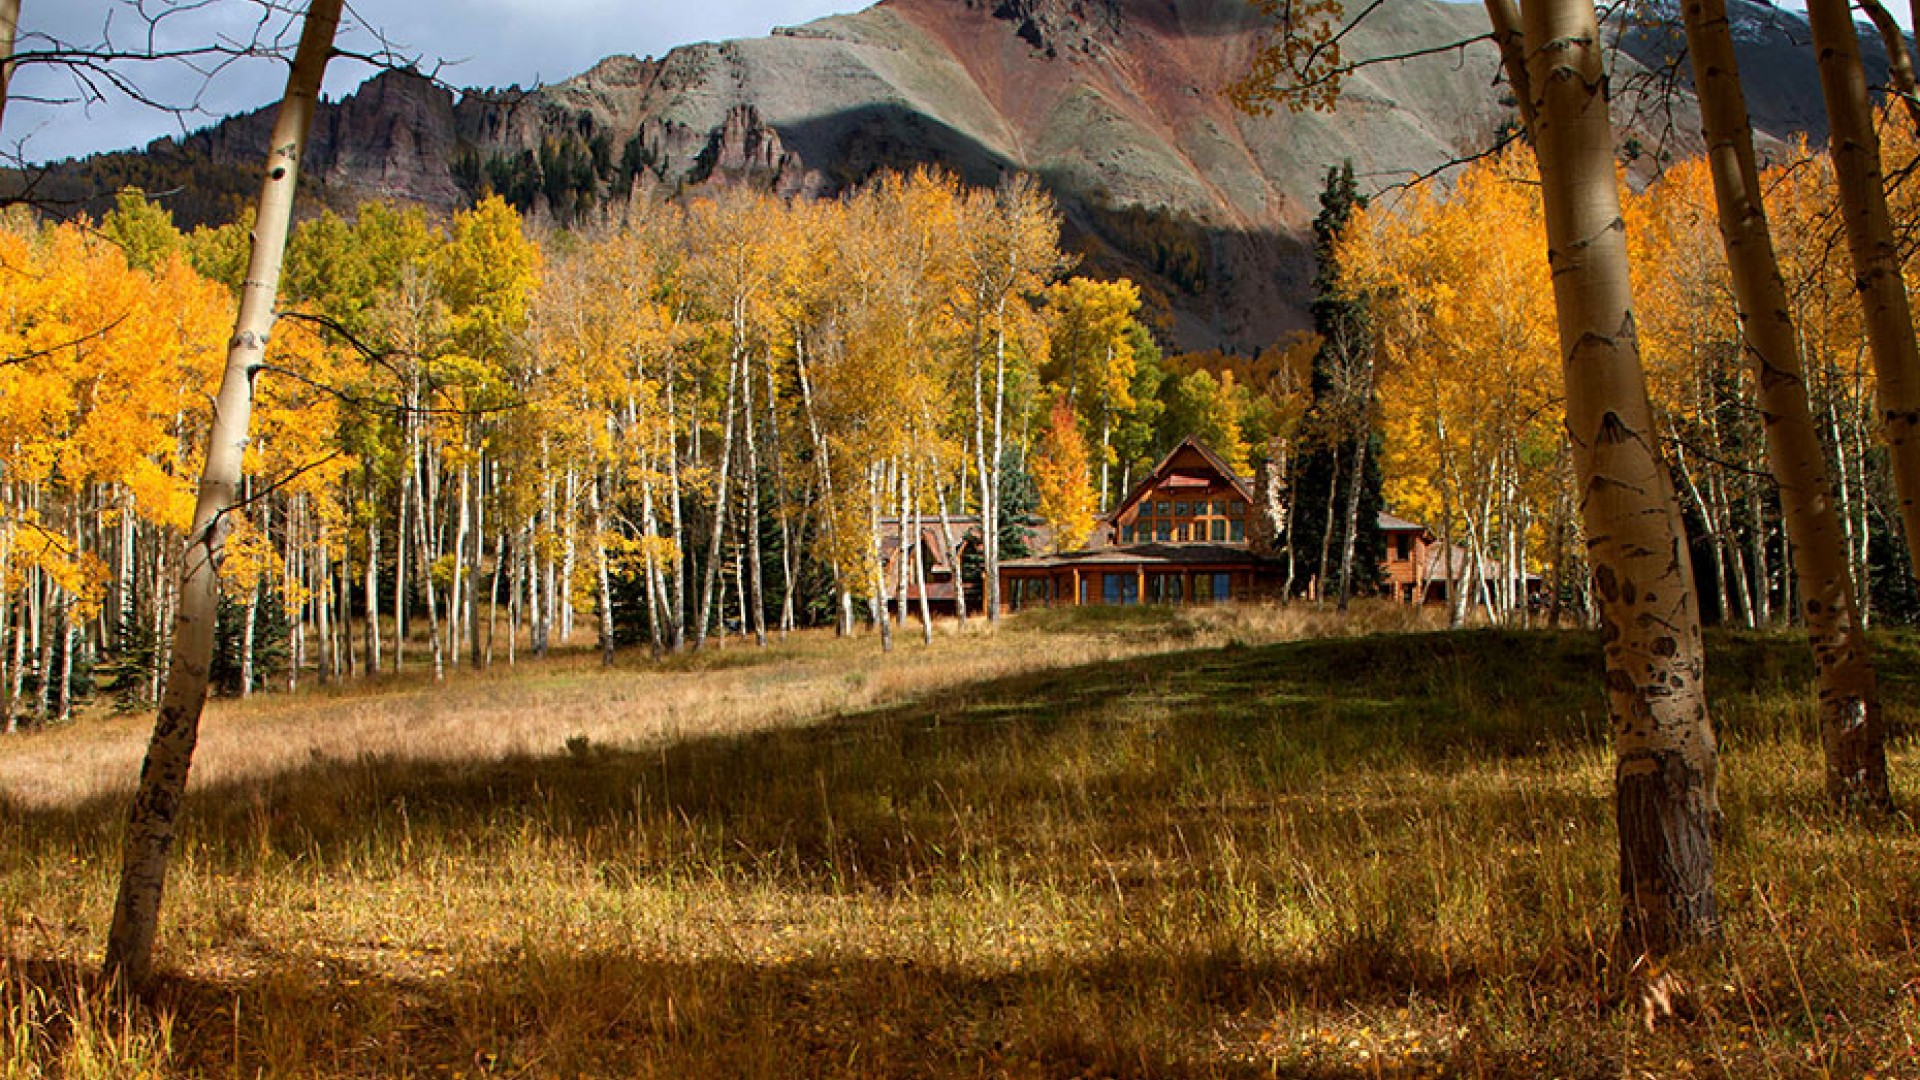 Tom Cruise's home, courtesy of Telluride Sotheby's International